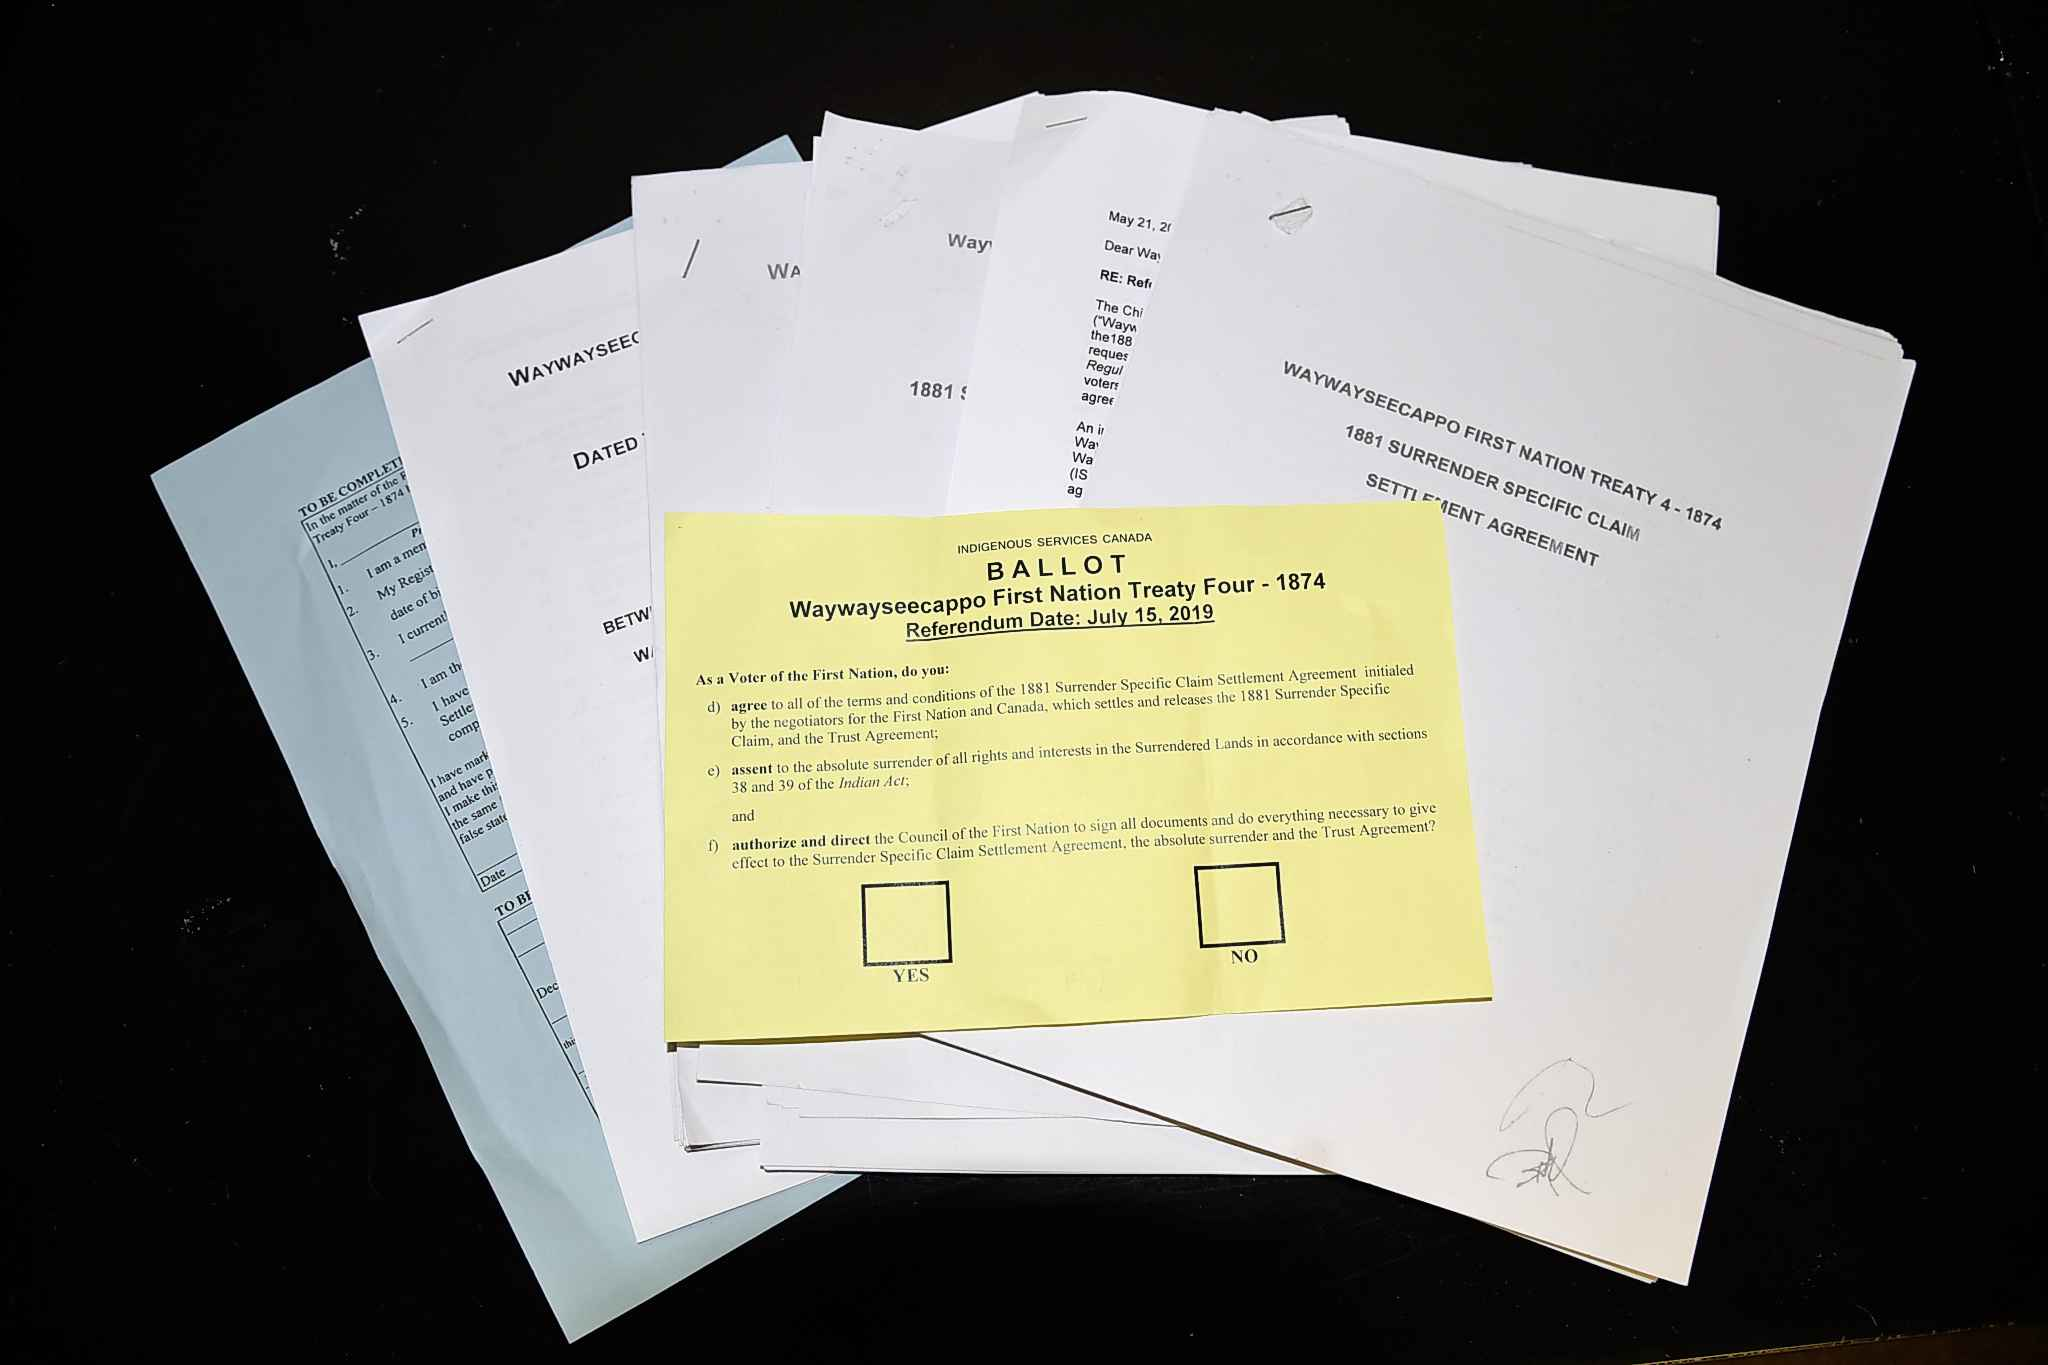 documents pertaining to the settlement agreement between Waywayseecappo First Nation and Canada